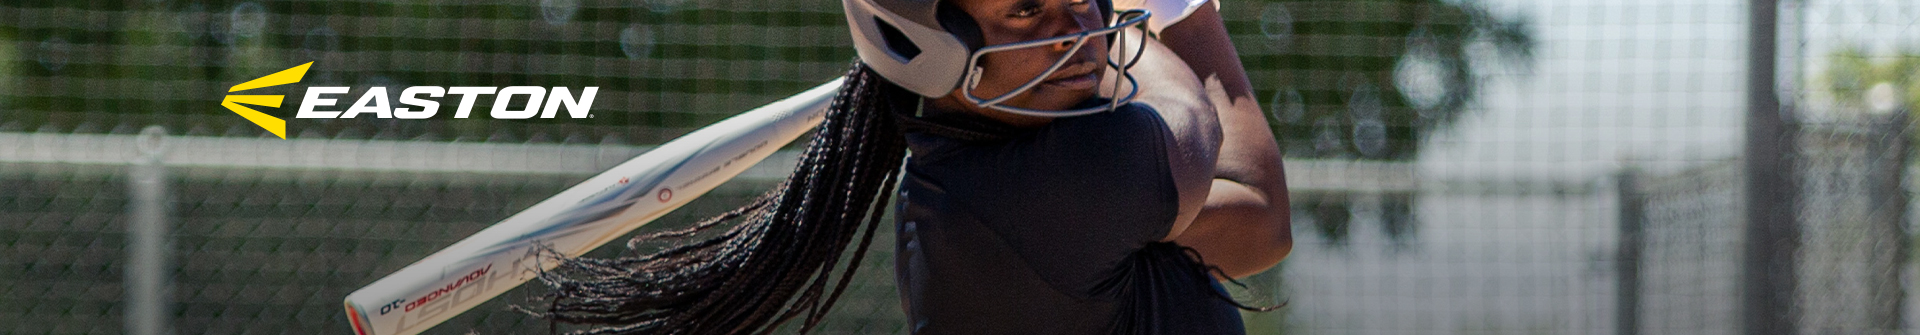 Gear Up For Spring With Easton! Shop Their New Selection Of Softball Bats, Pants, Gloves, Cleats, Helmets & Much More Available For Sale At Your Local Source For Sports Baseball & Softball Stores Near You.